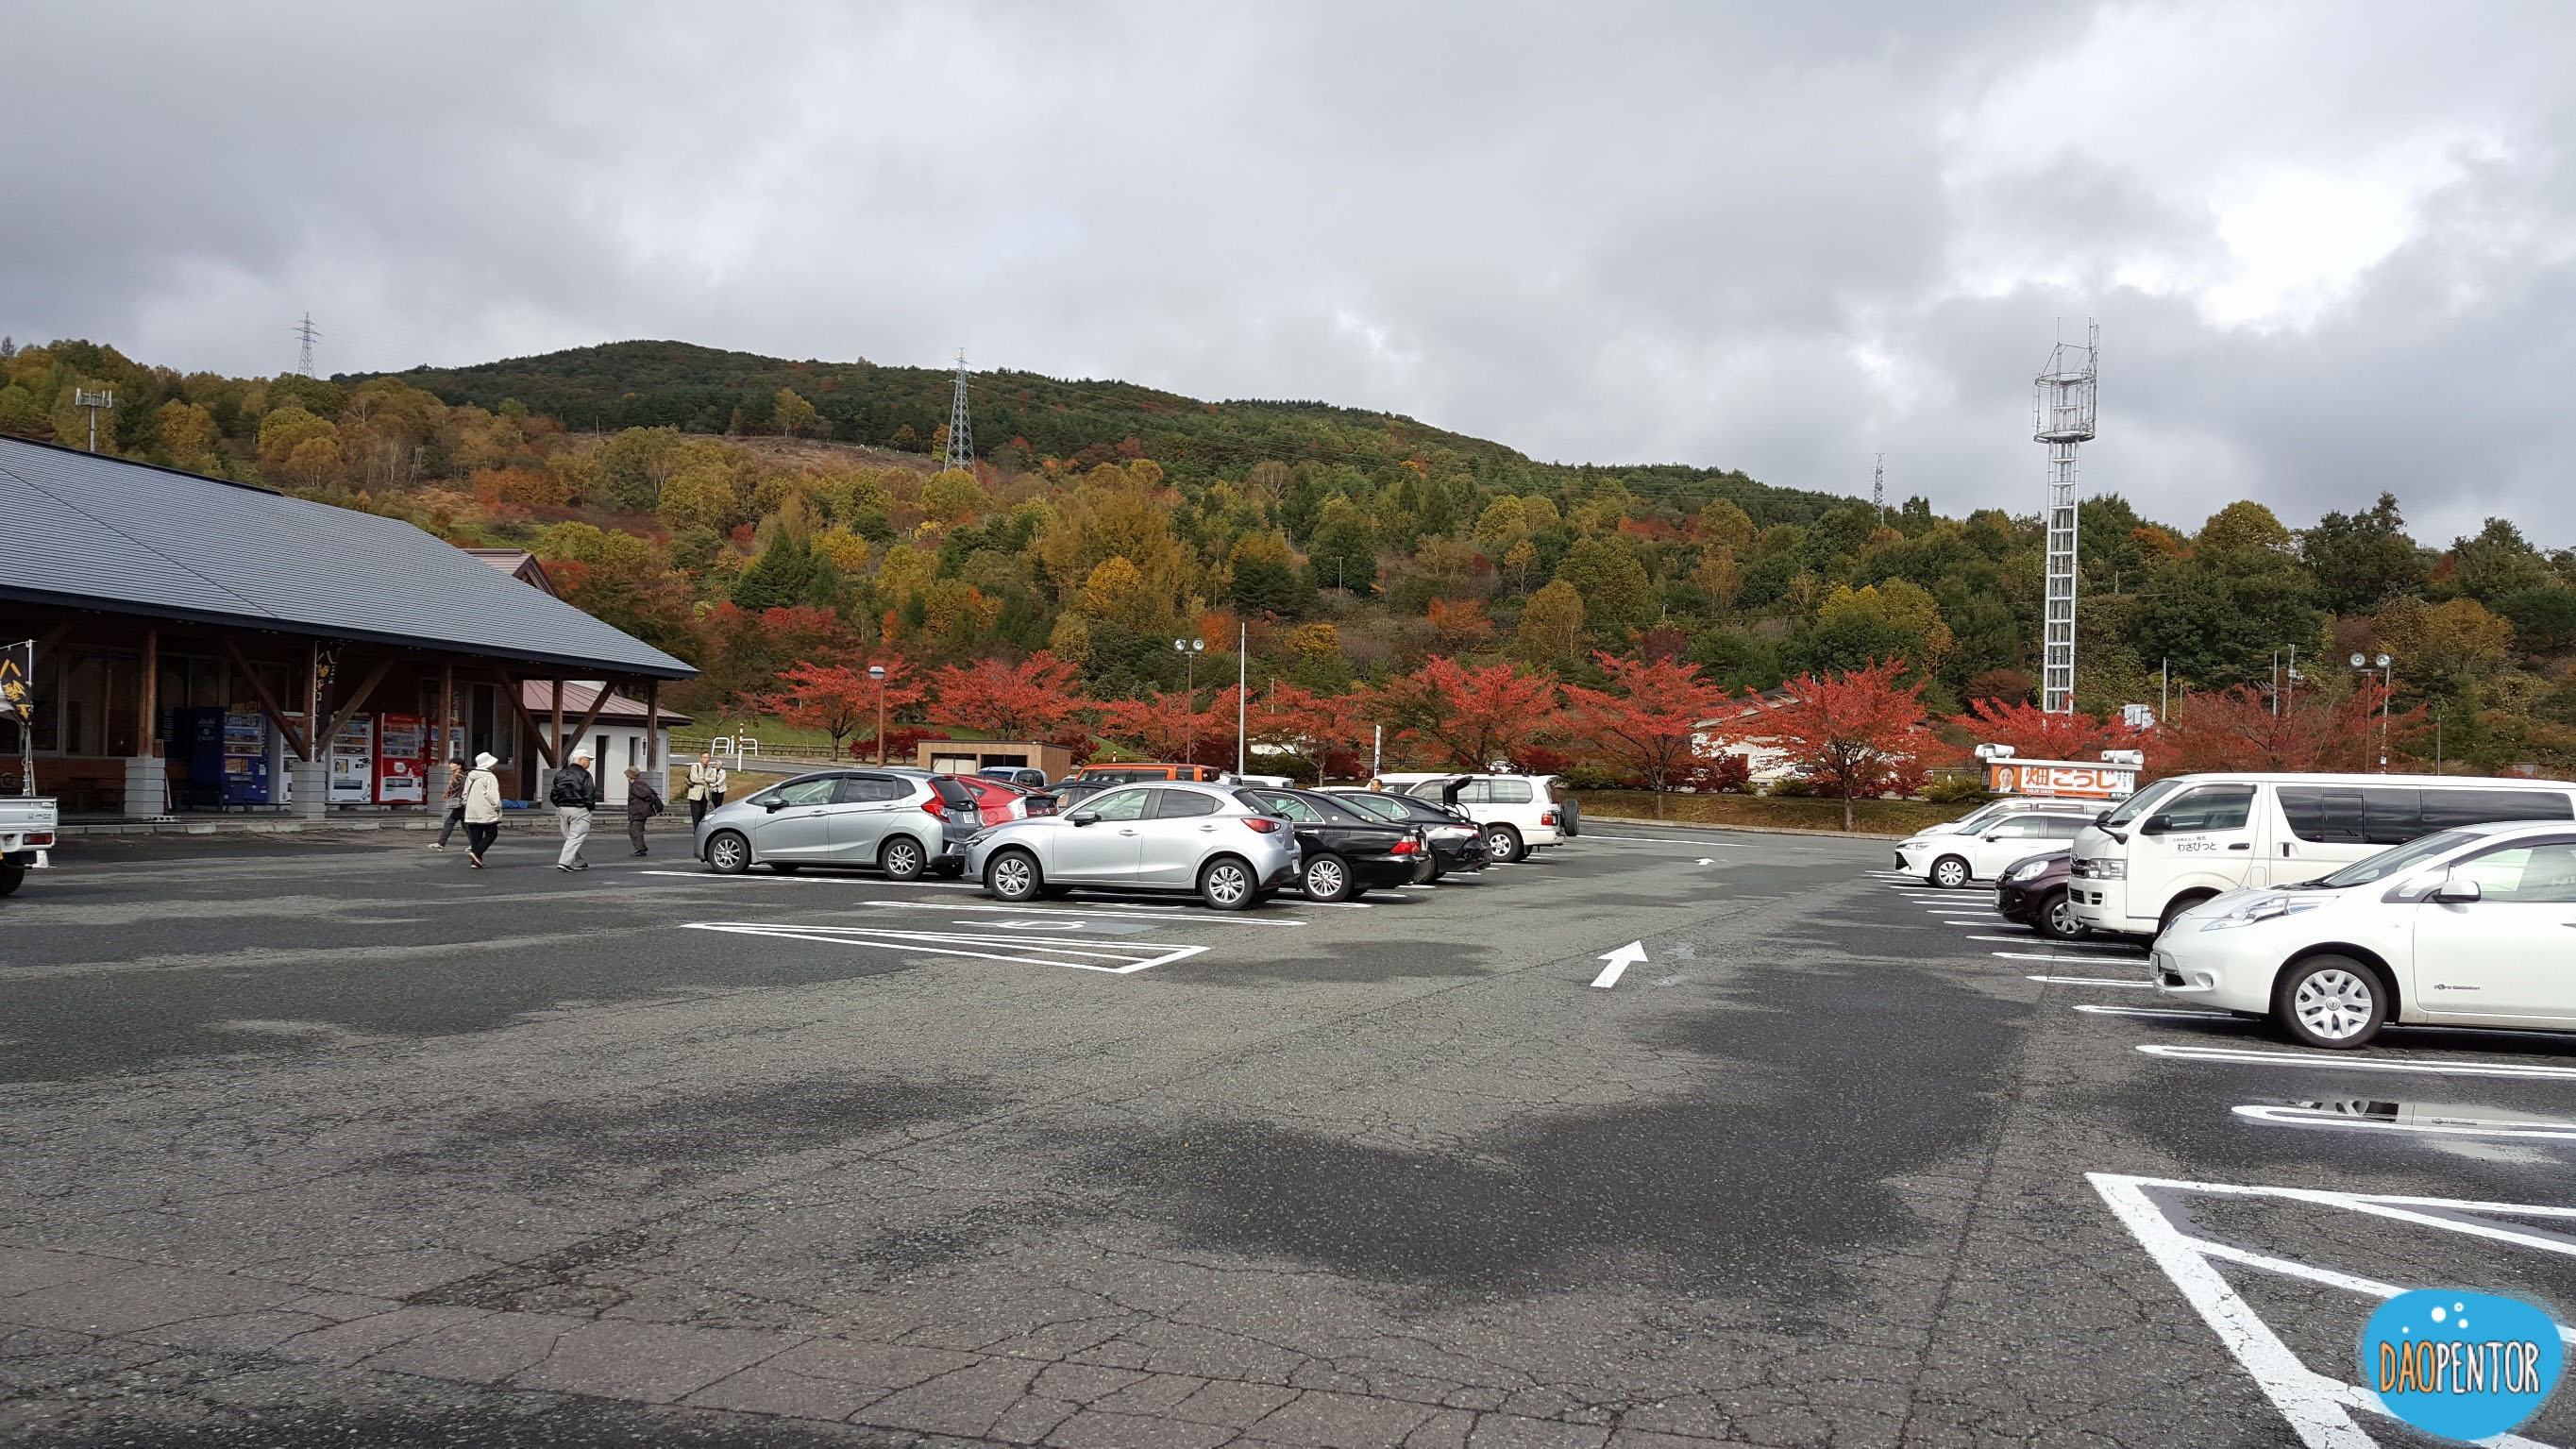 CAR PARK HACHIMANTAI